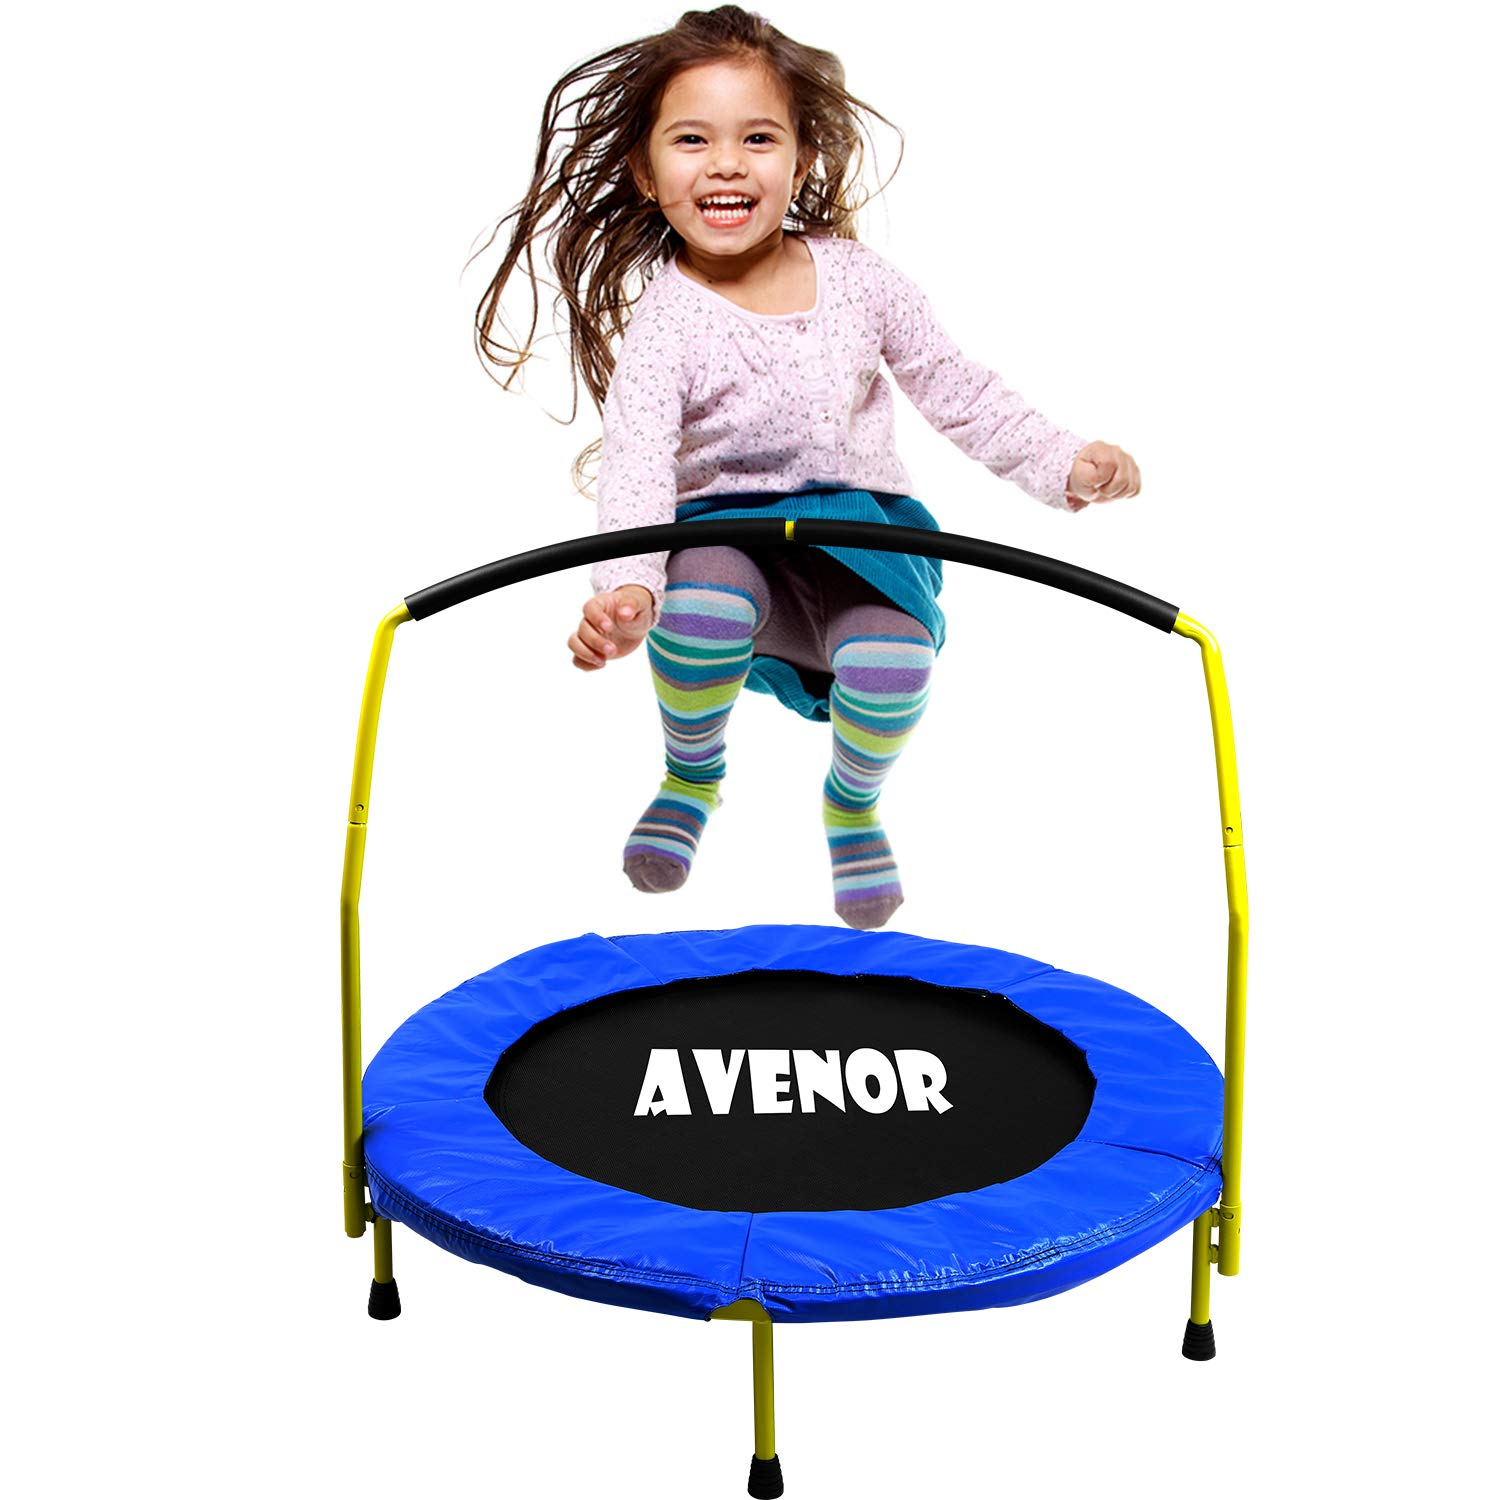 Toddler Trampoline With Handle - 36'' Kids Trampoline With Handle - Mini Trampoline w/ Sturdy Frame, Coil Spring, Safety Padded Cover -Heavy Duty Mini Trampoline Indoor Outdoor Toddler Trampoline by Avenor